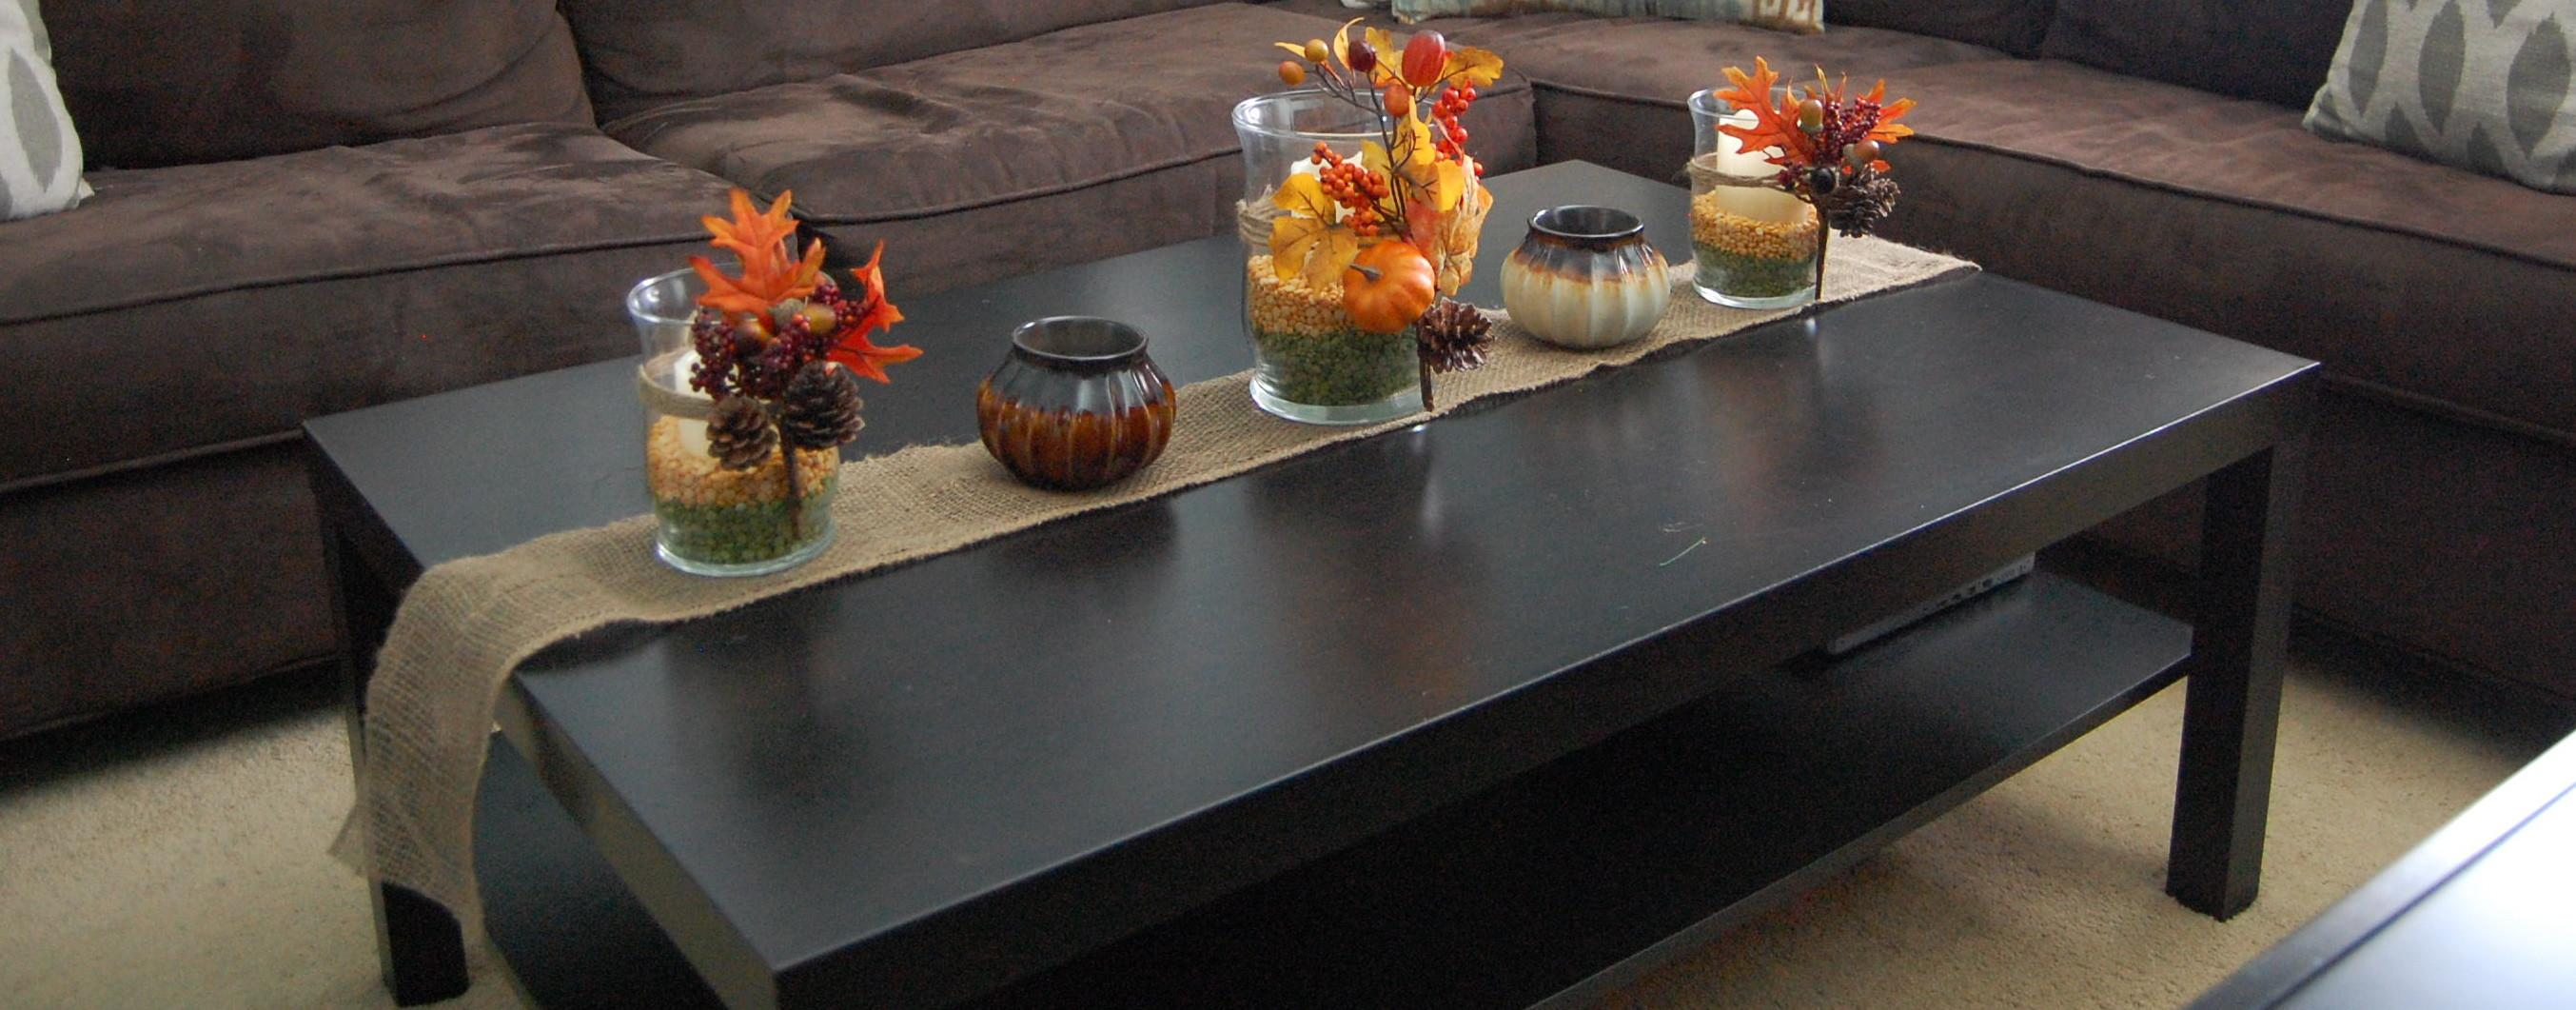 Table Centrepieces Decorating 2017 Fall